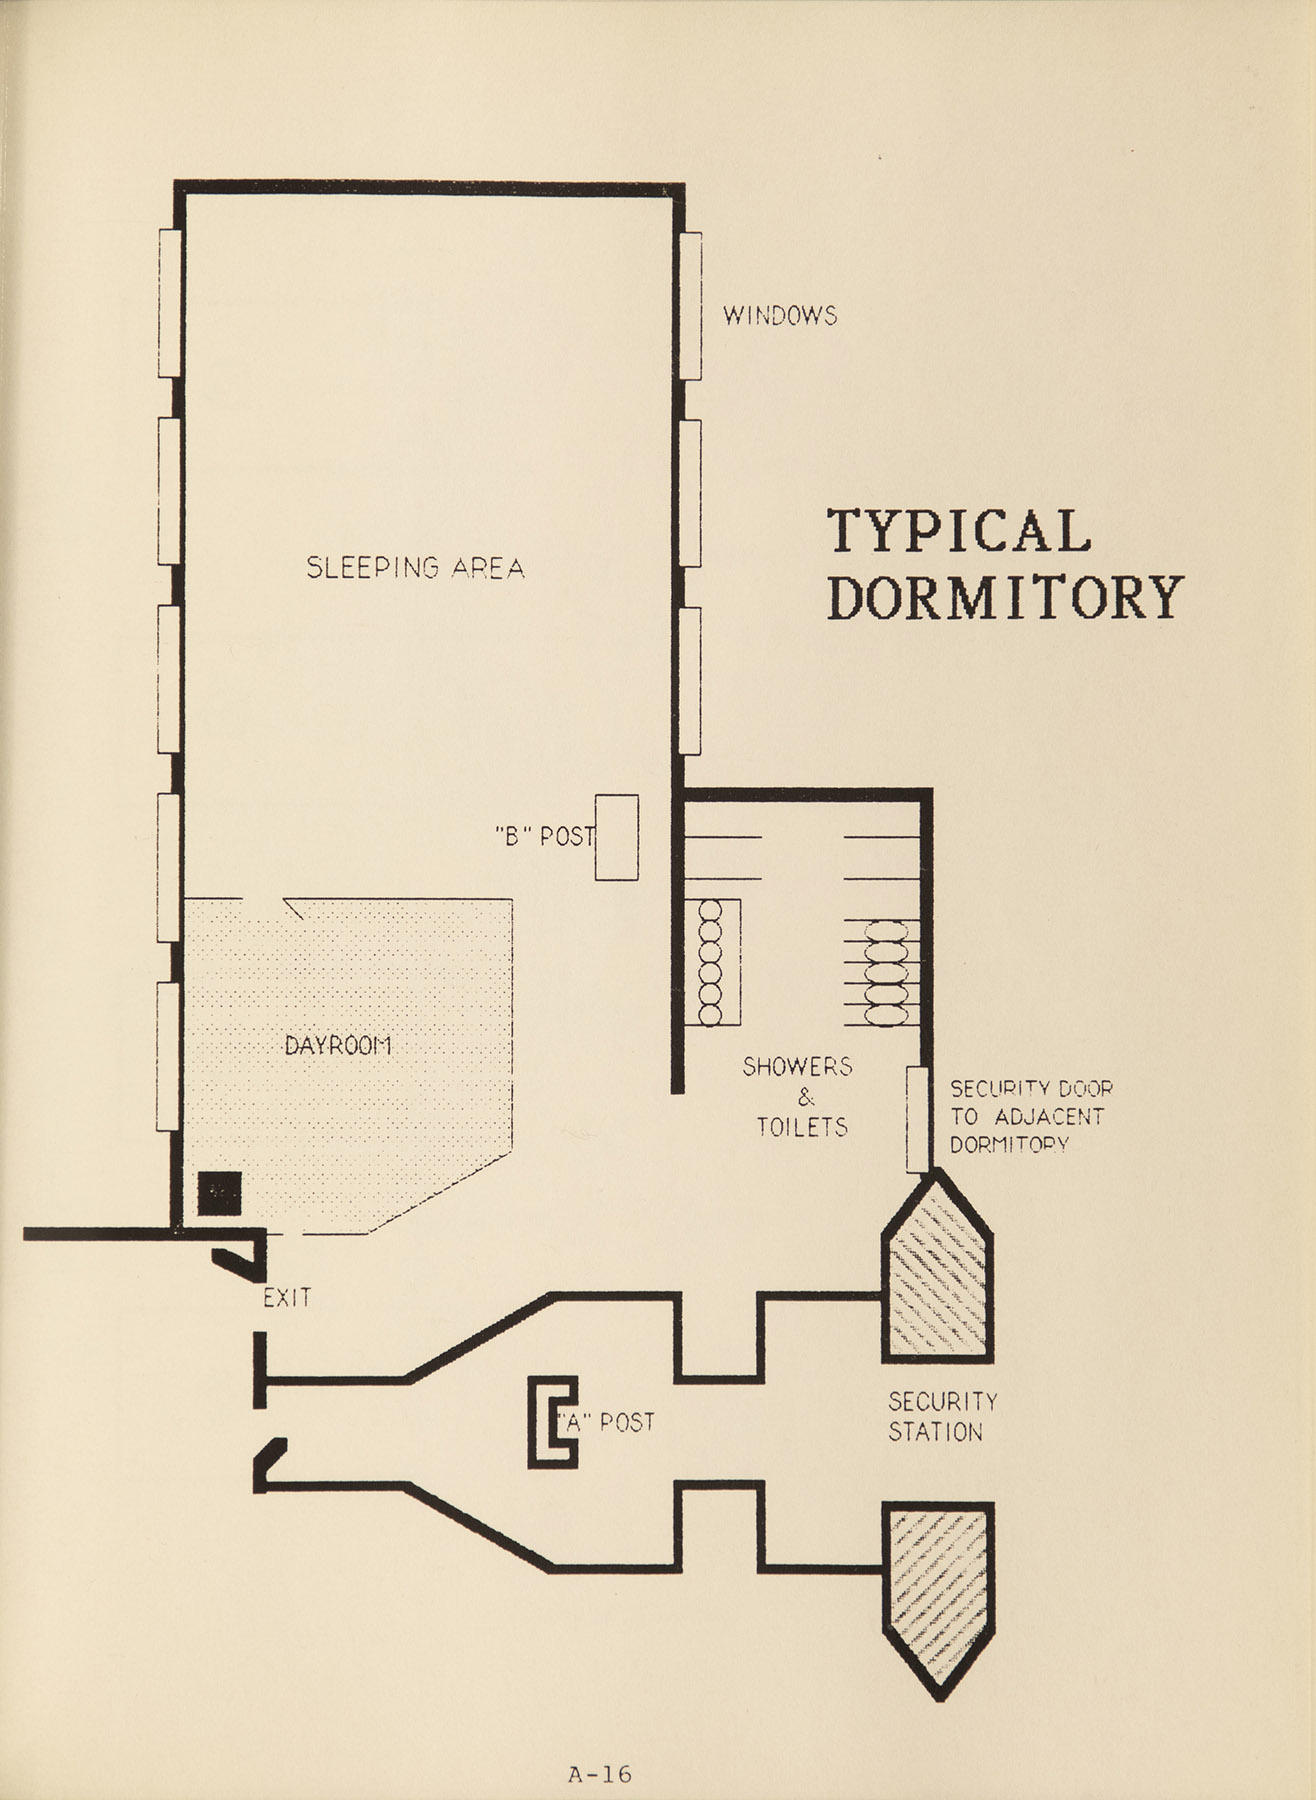 Typical Dormitory, from  The Disturbance at the Rikers Island Otis Bantum Correctional Center, August 14, 1990: Its Causes and the Department of Correction Response . NYC Municipal Library.